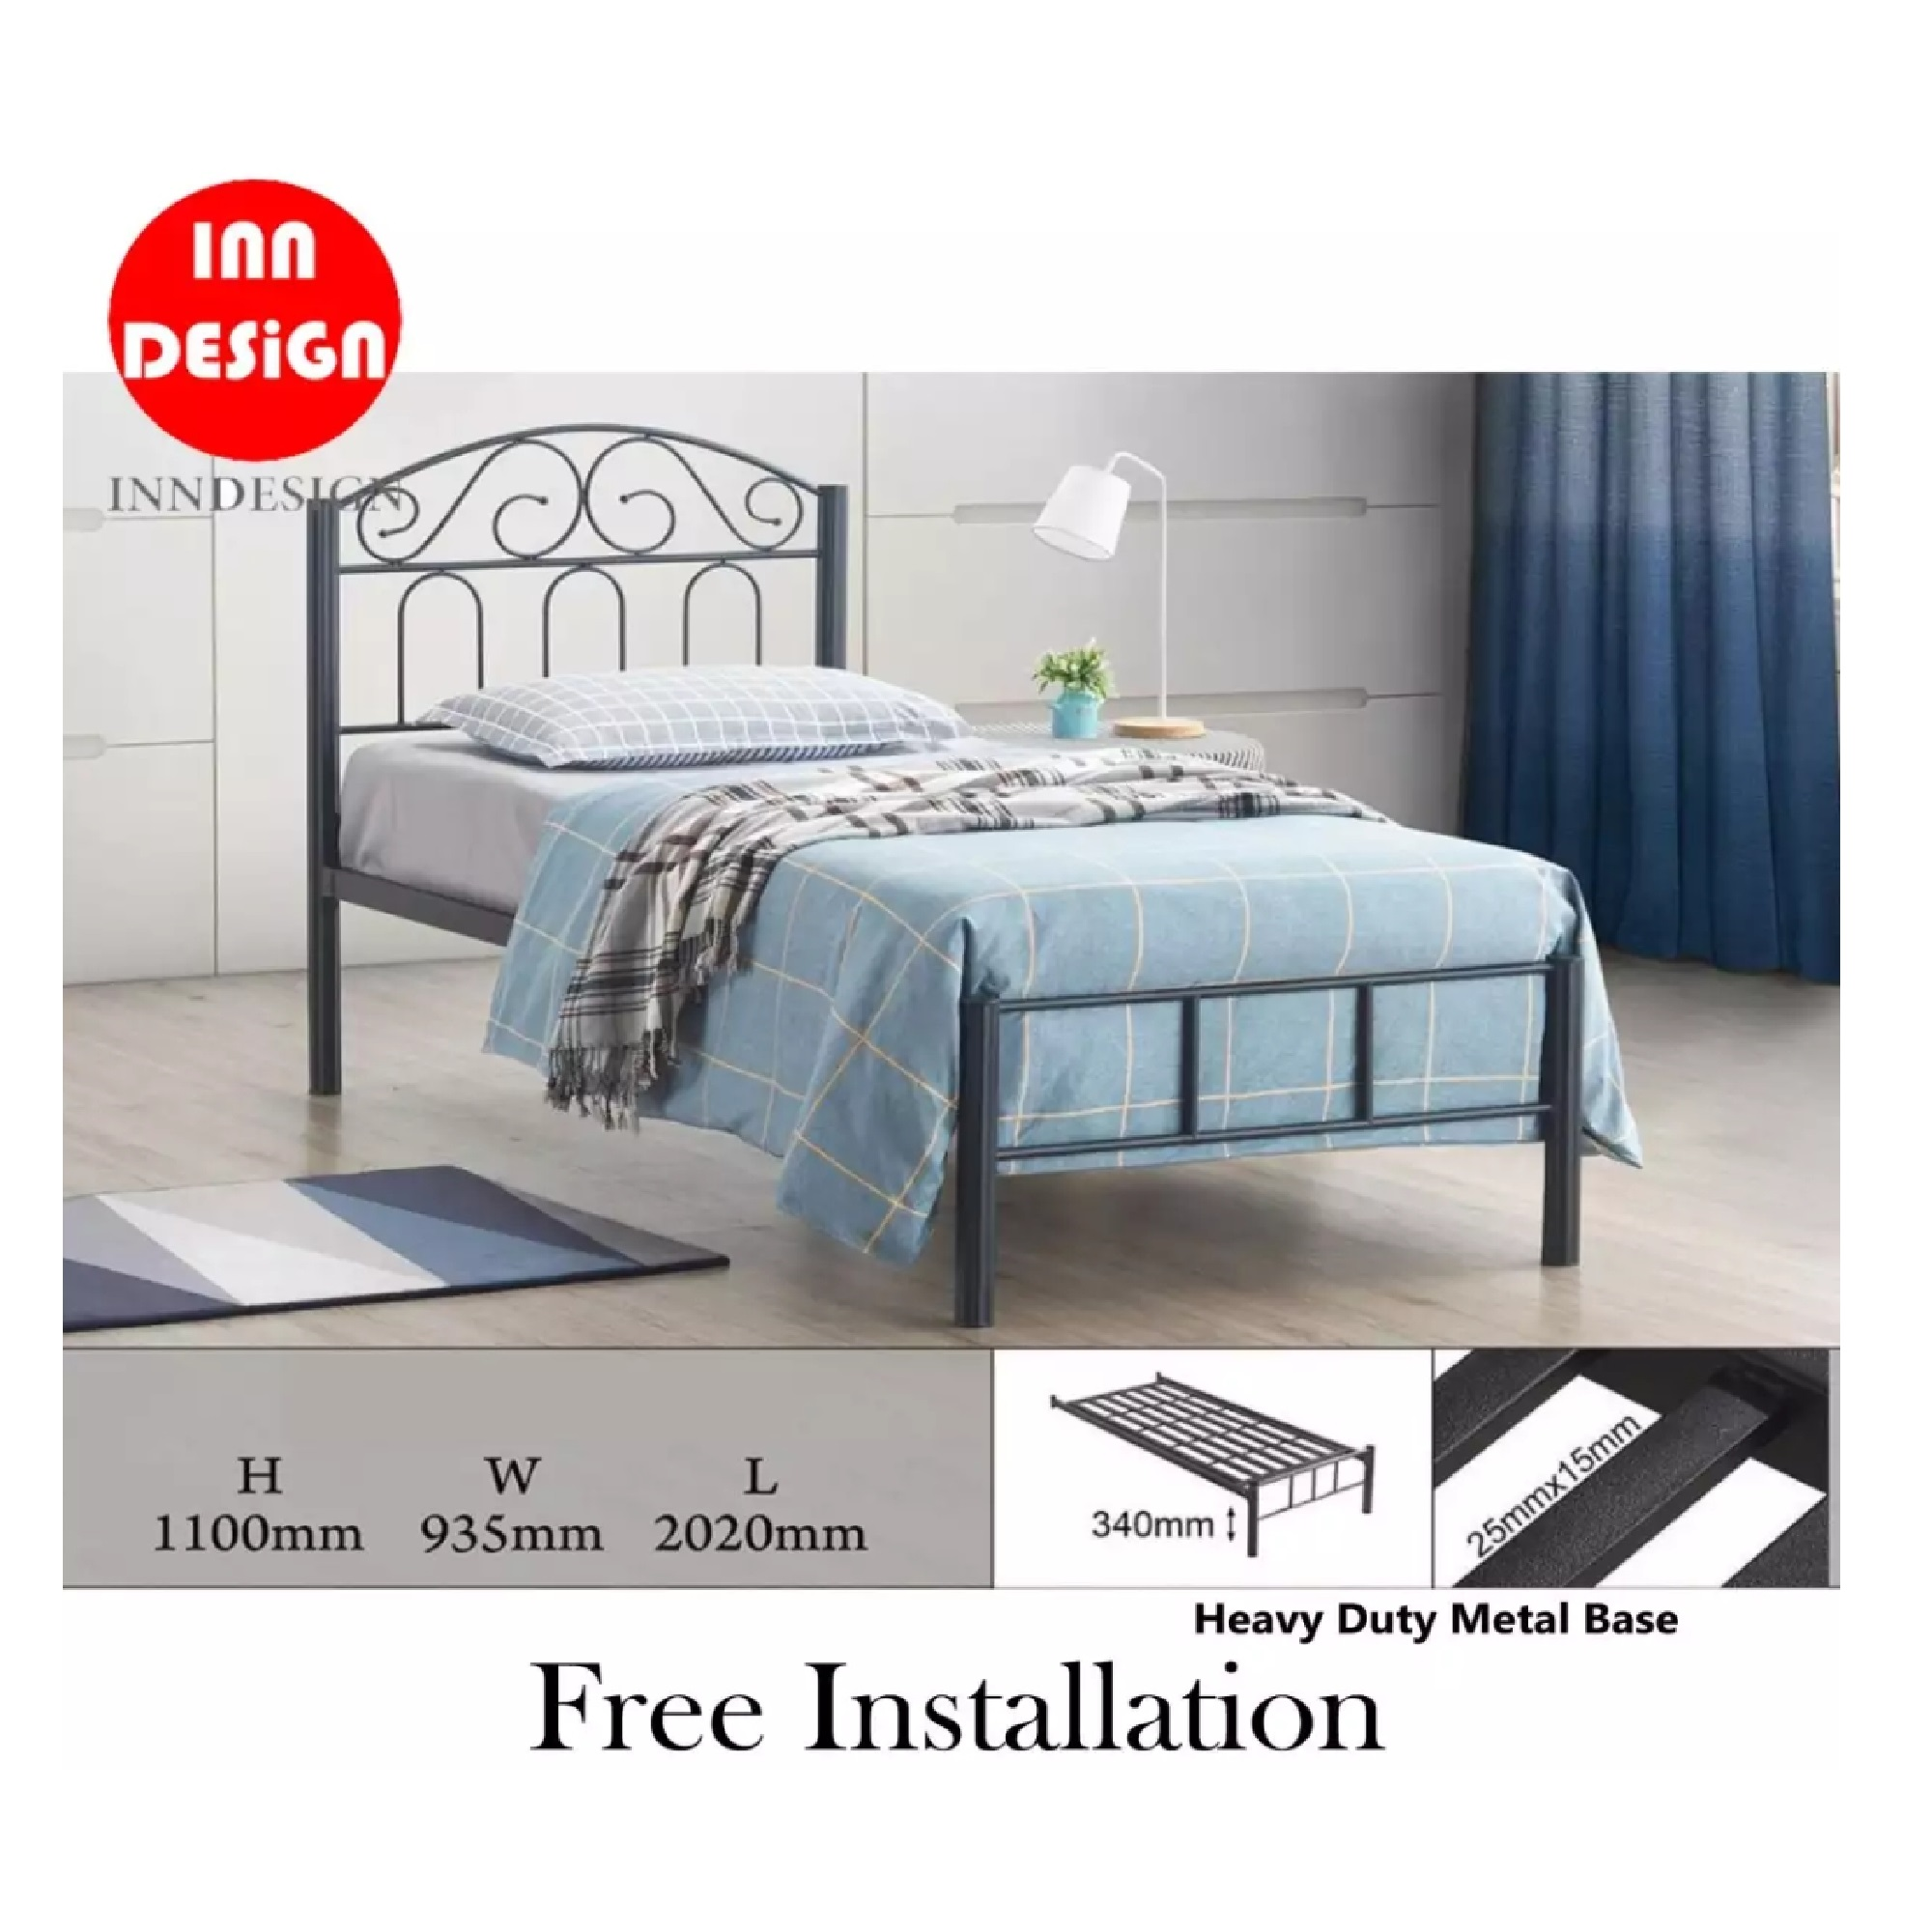 Emi II Single Heavy Duty Metal Bedframe / Bed (Free Delivery and Installation)